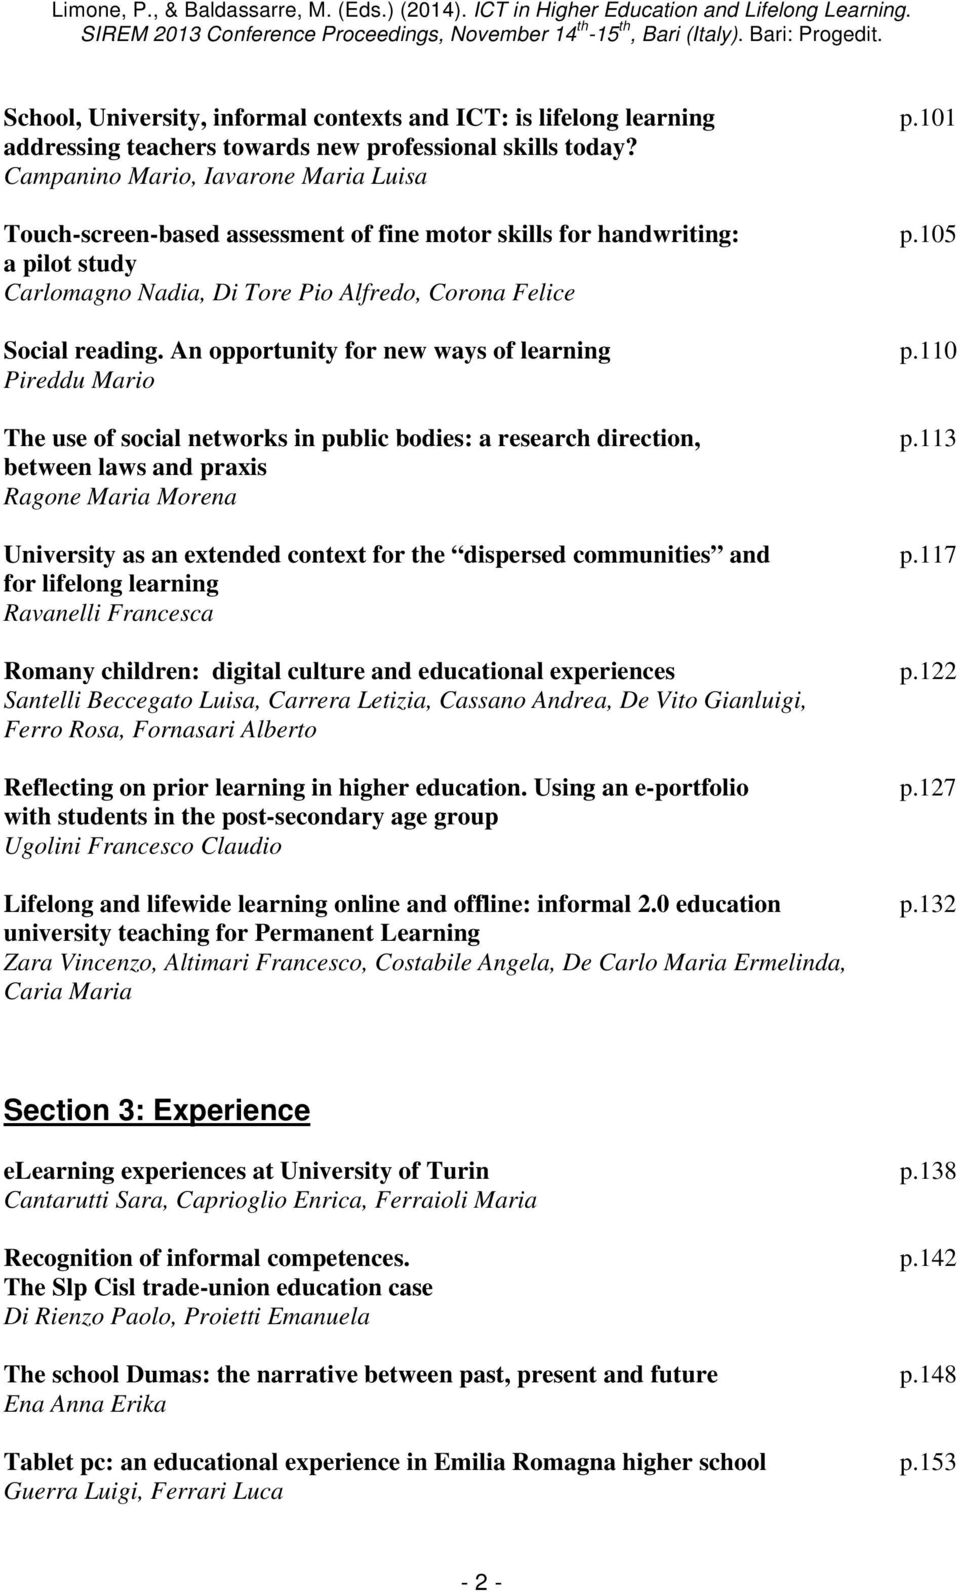 An opportunity for new ways of learning p.110 Pireddu Mario The use of social networks in public bodies: a research direction, p.